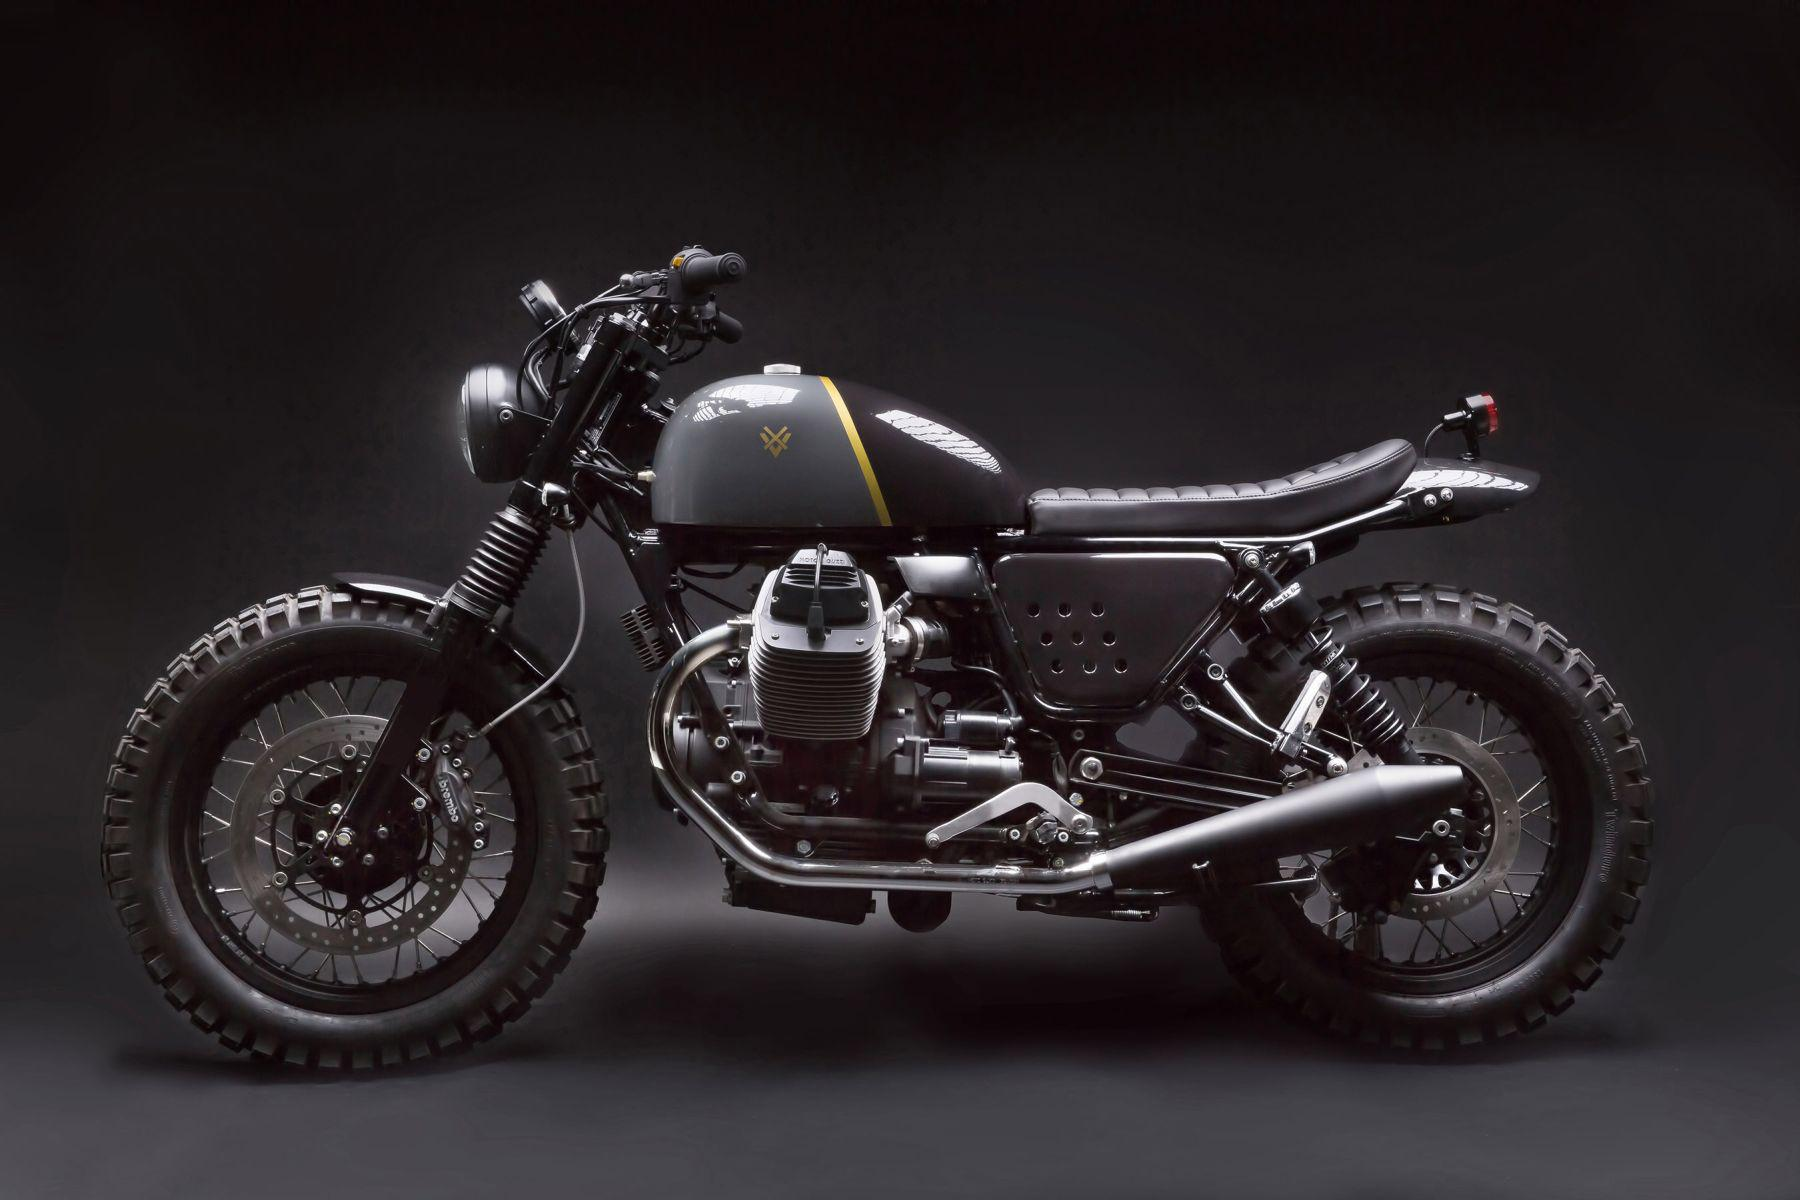 Moto Guzzi Nevada Cafe Racer Kit